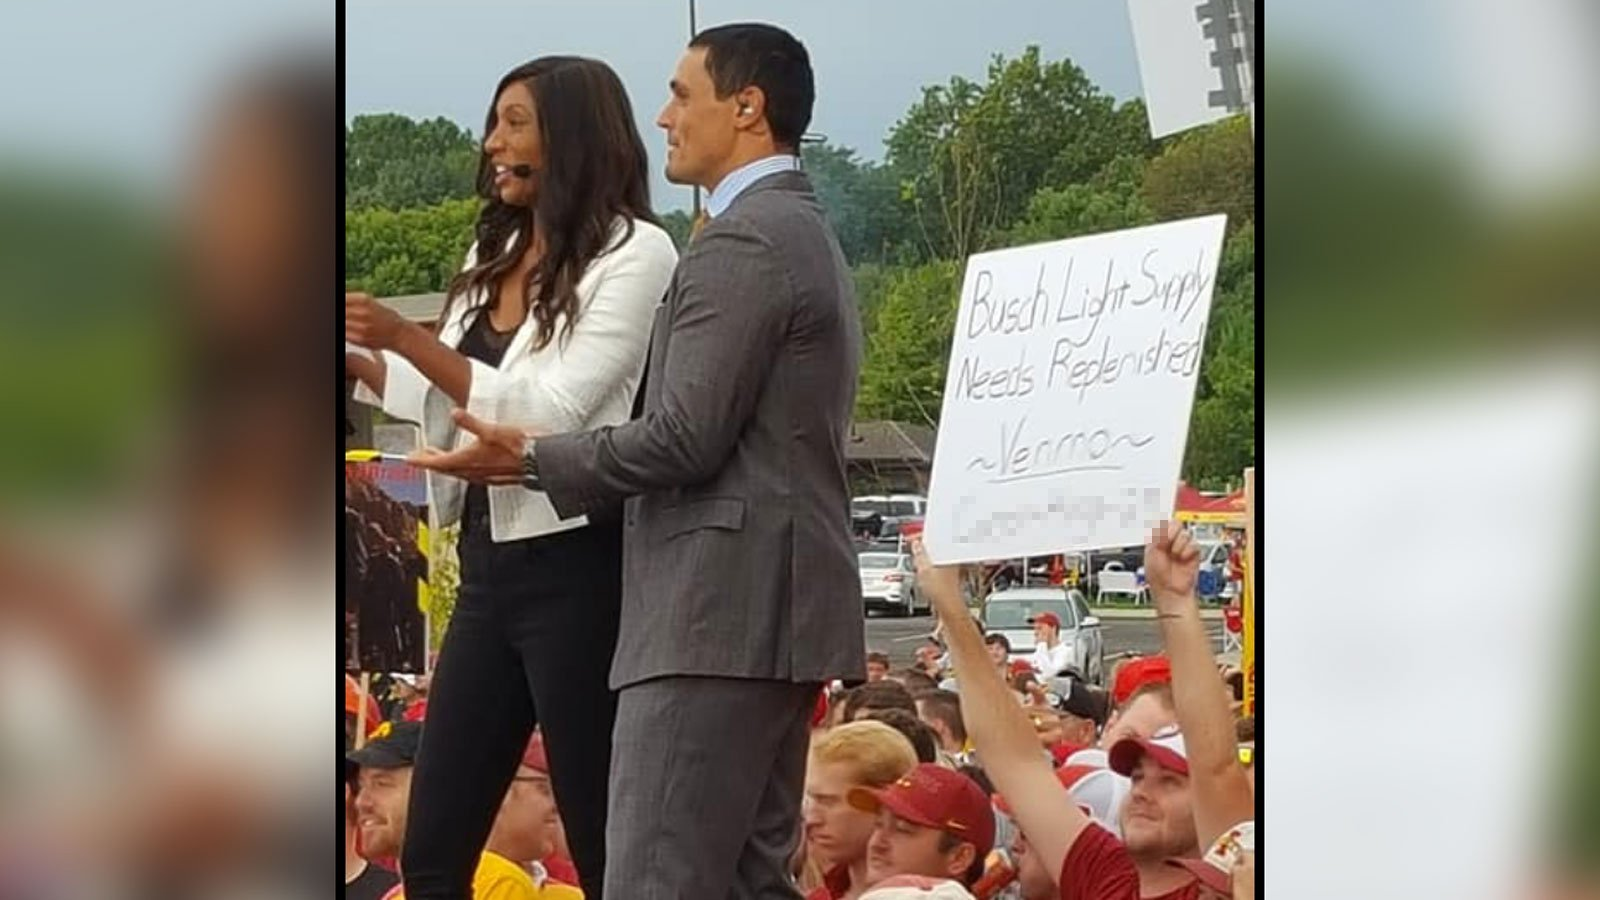 Fan's sign requesting beer money on ESPN broadcast brings in $20,000